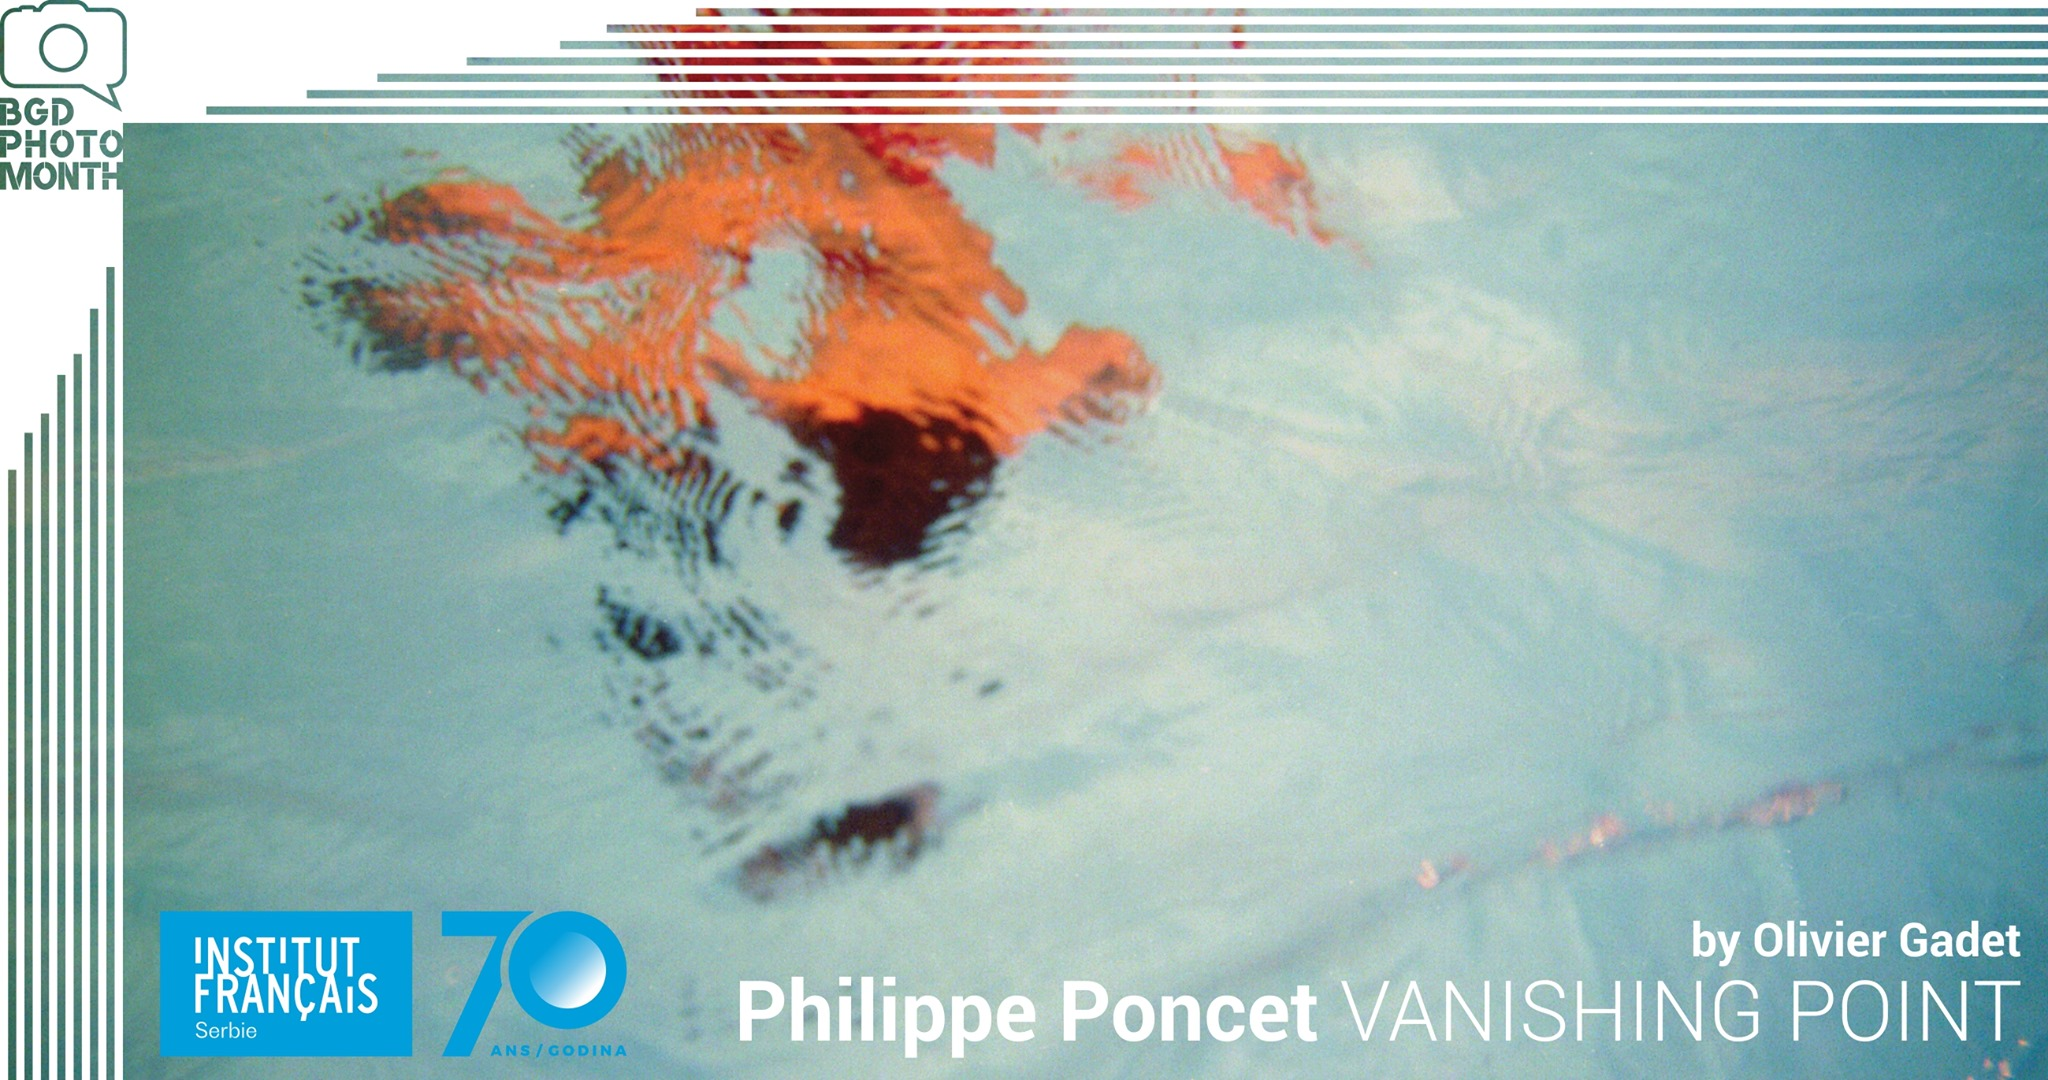 Vanishing Point – Philippe Poncet by Olivier Gadet